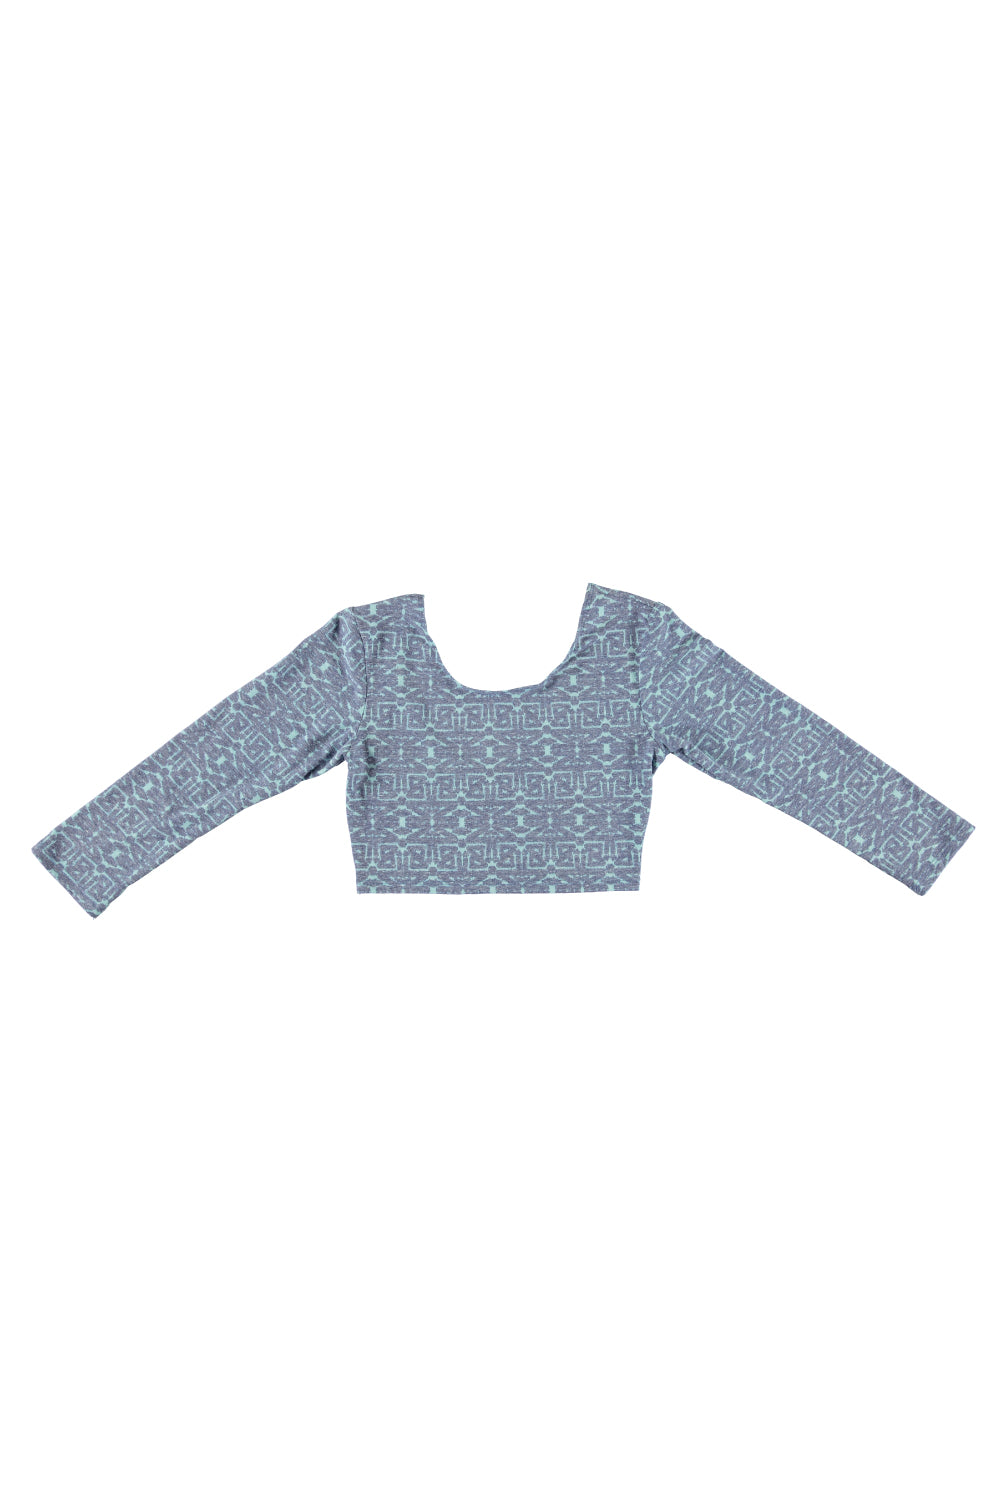 Women's 3/4 Sleeve Crop Top - Tribal Indigo